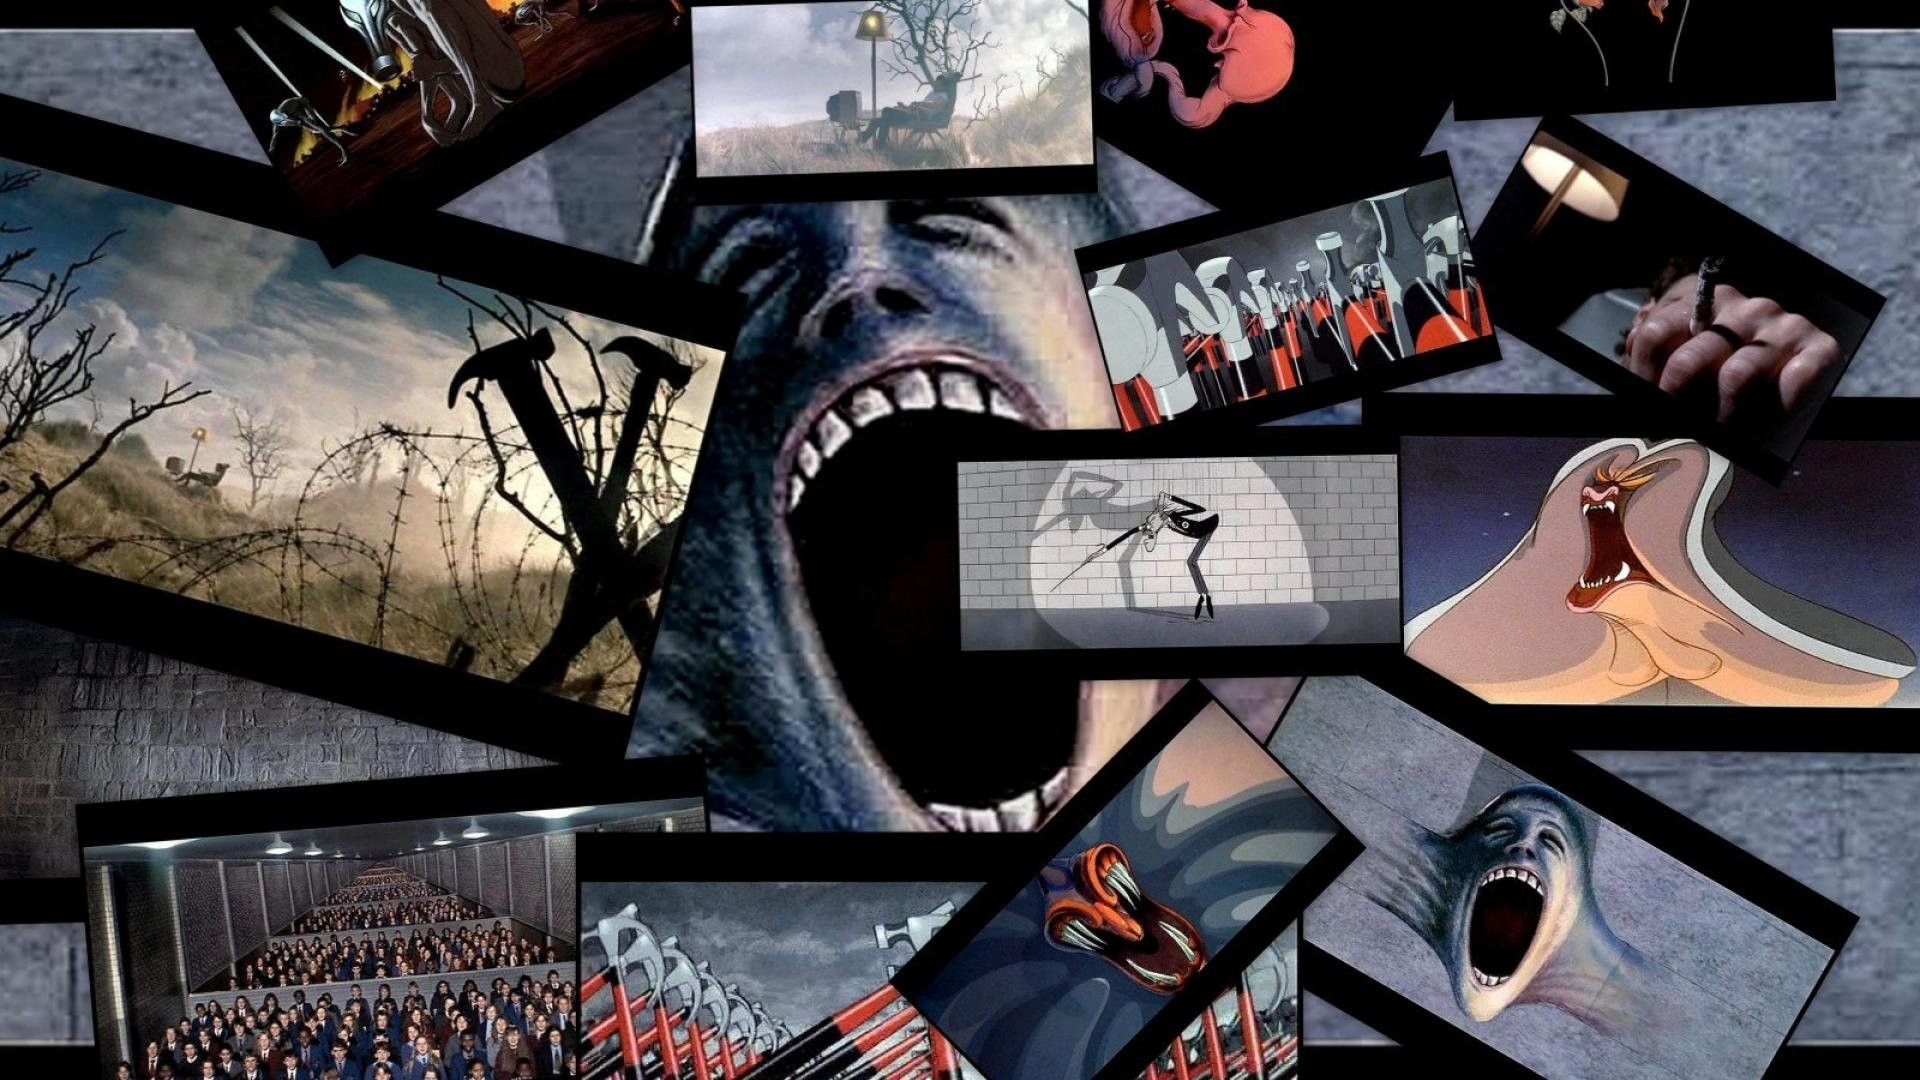 … music pink floyd the wall walldevil; pink floyd wallpaper …